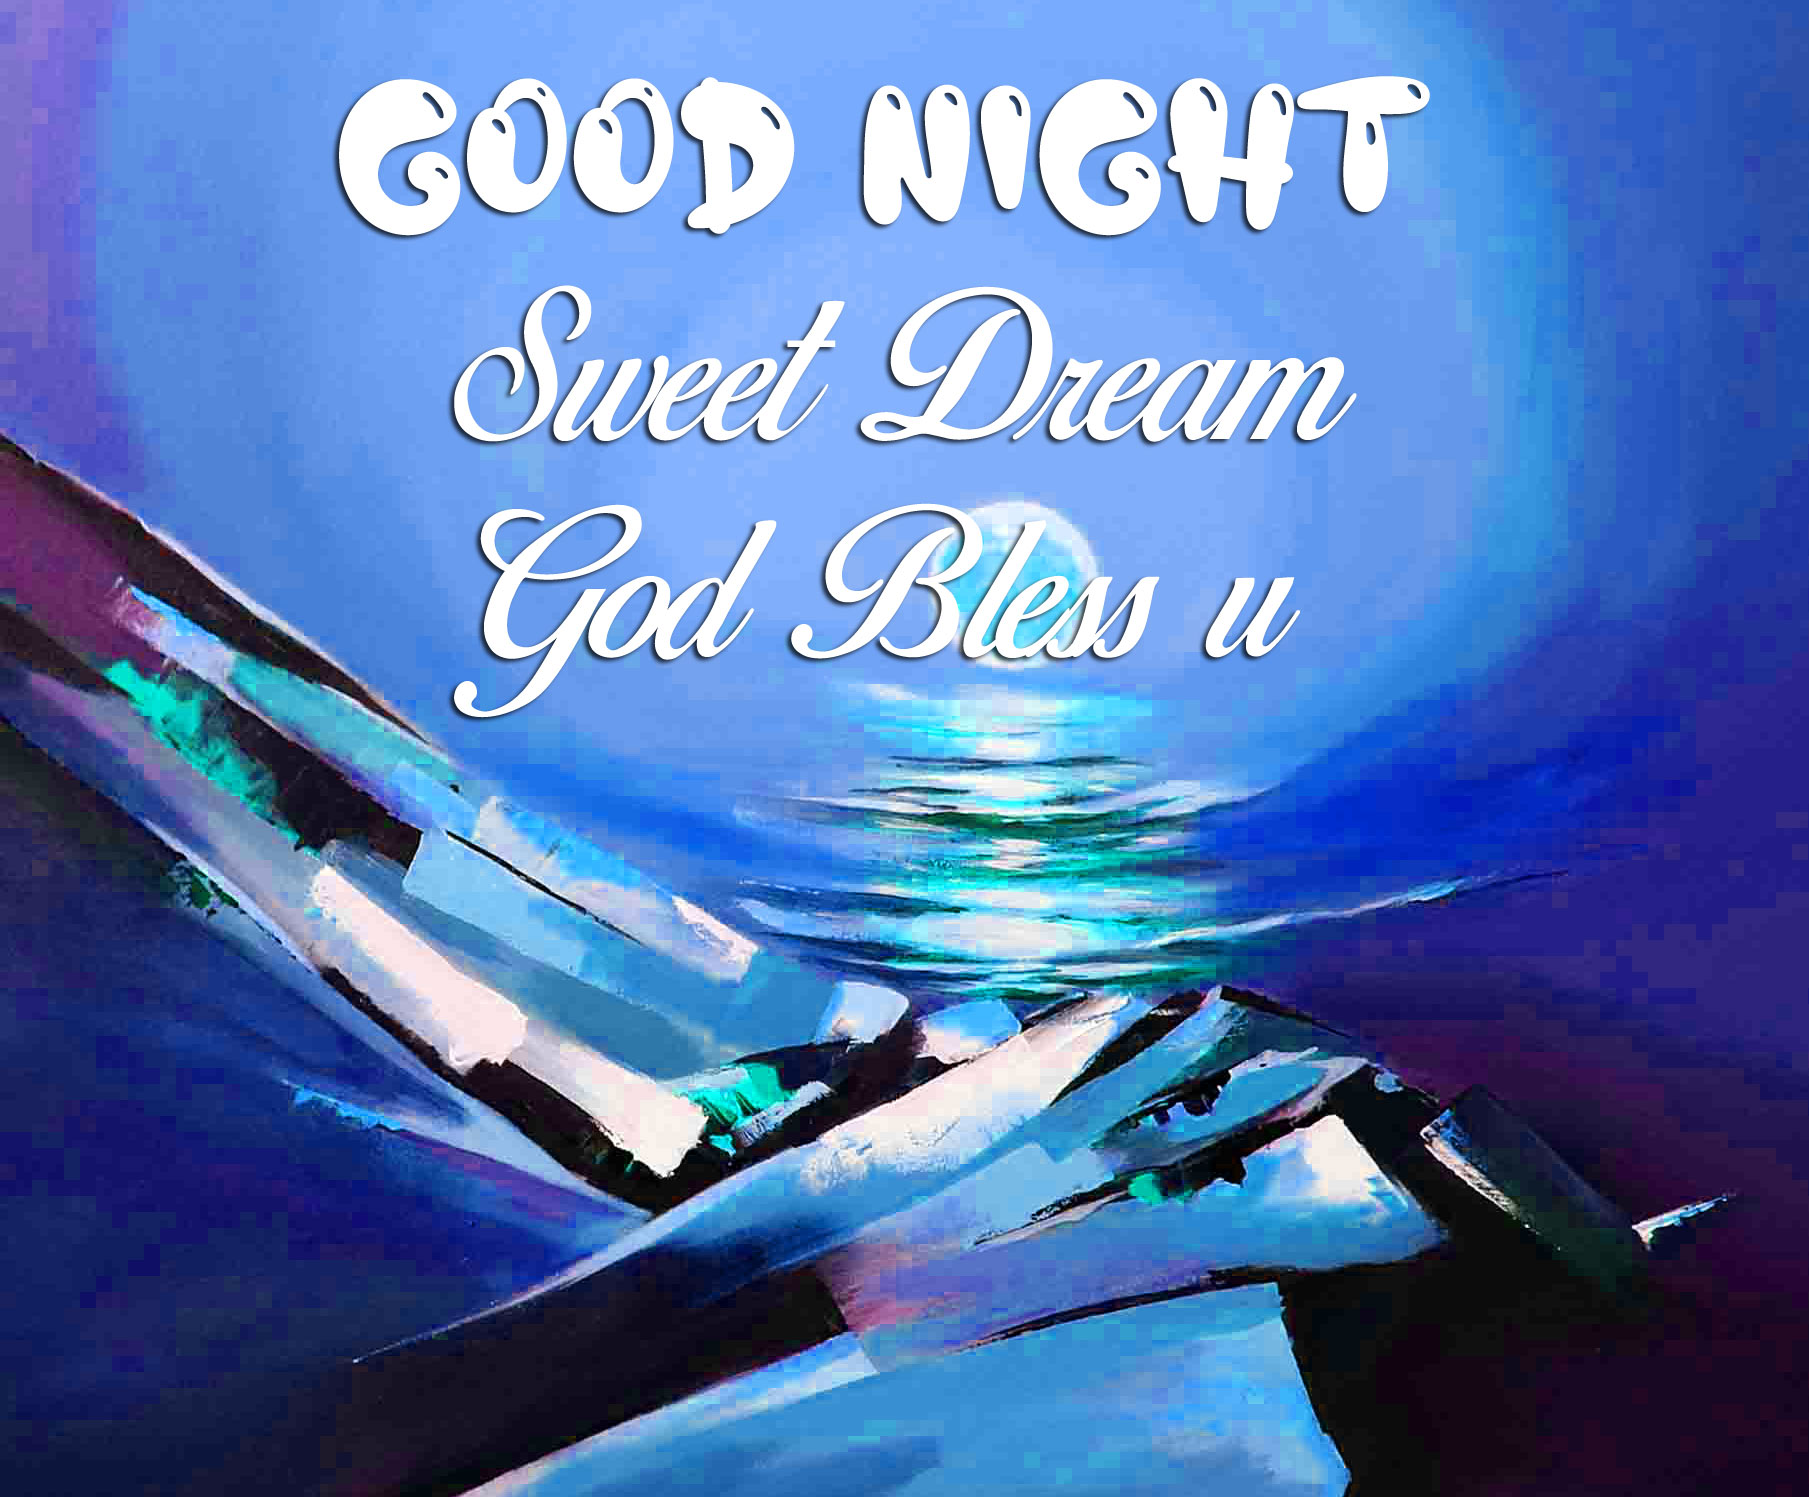 best river Good Nihgt Sweet Dream God Bless You moon images